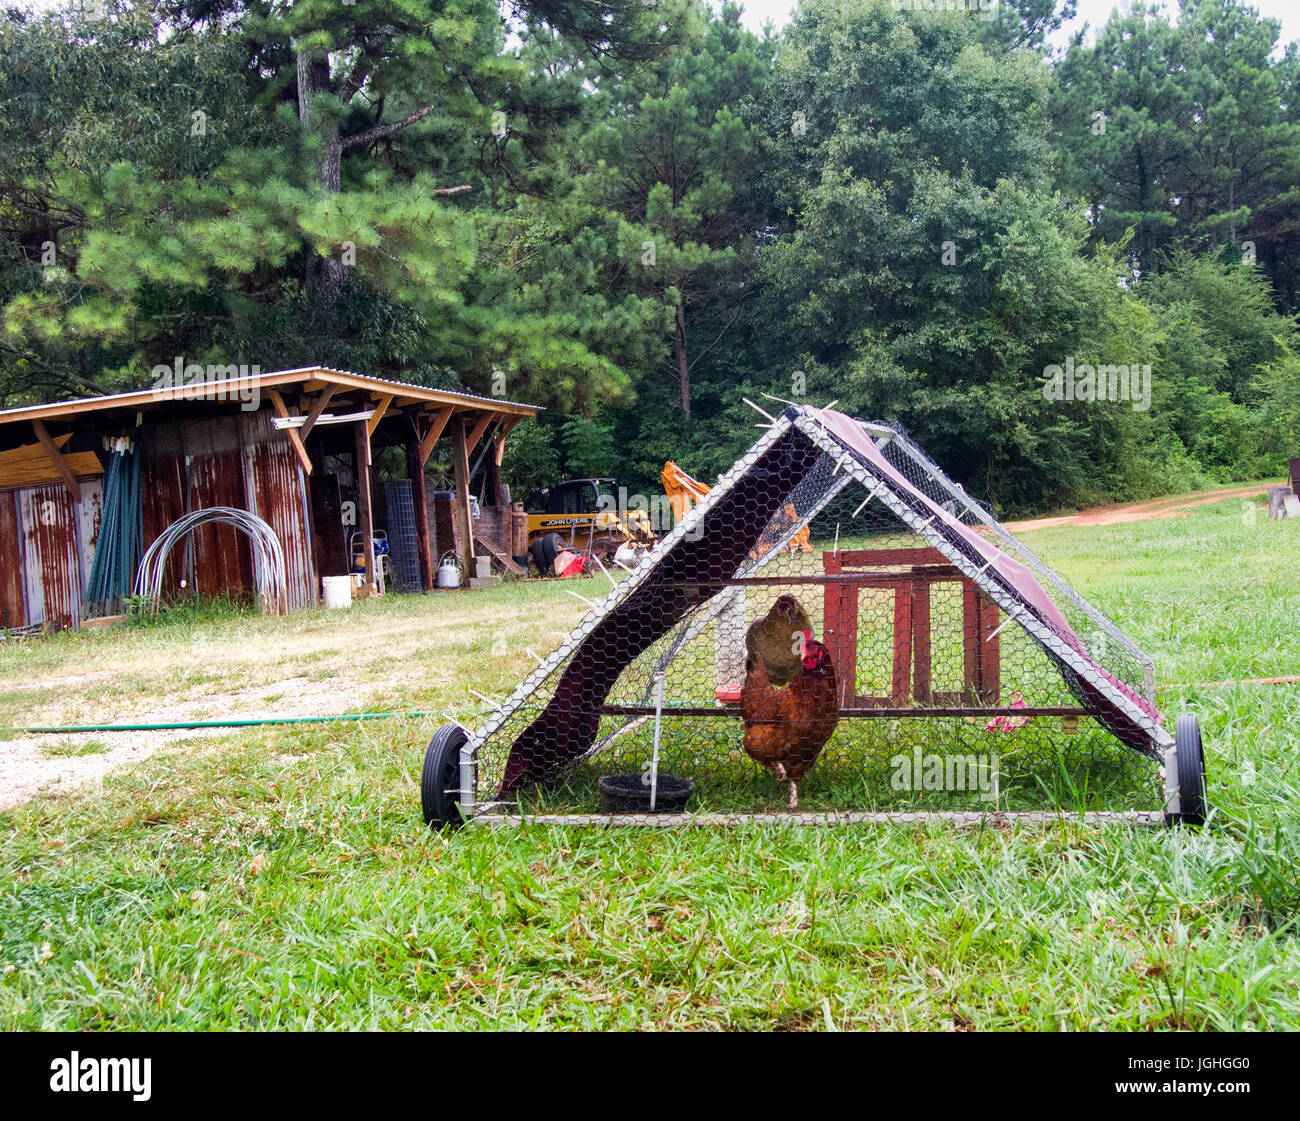 Rotation Grazing hen house on wheels, hen - Stock Image